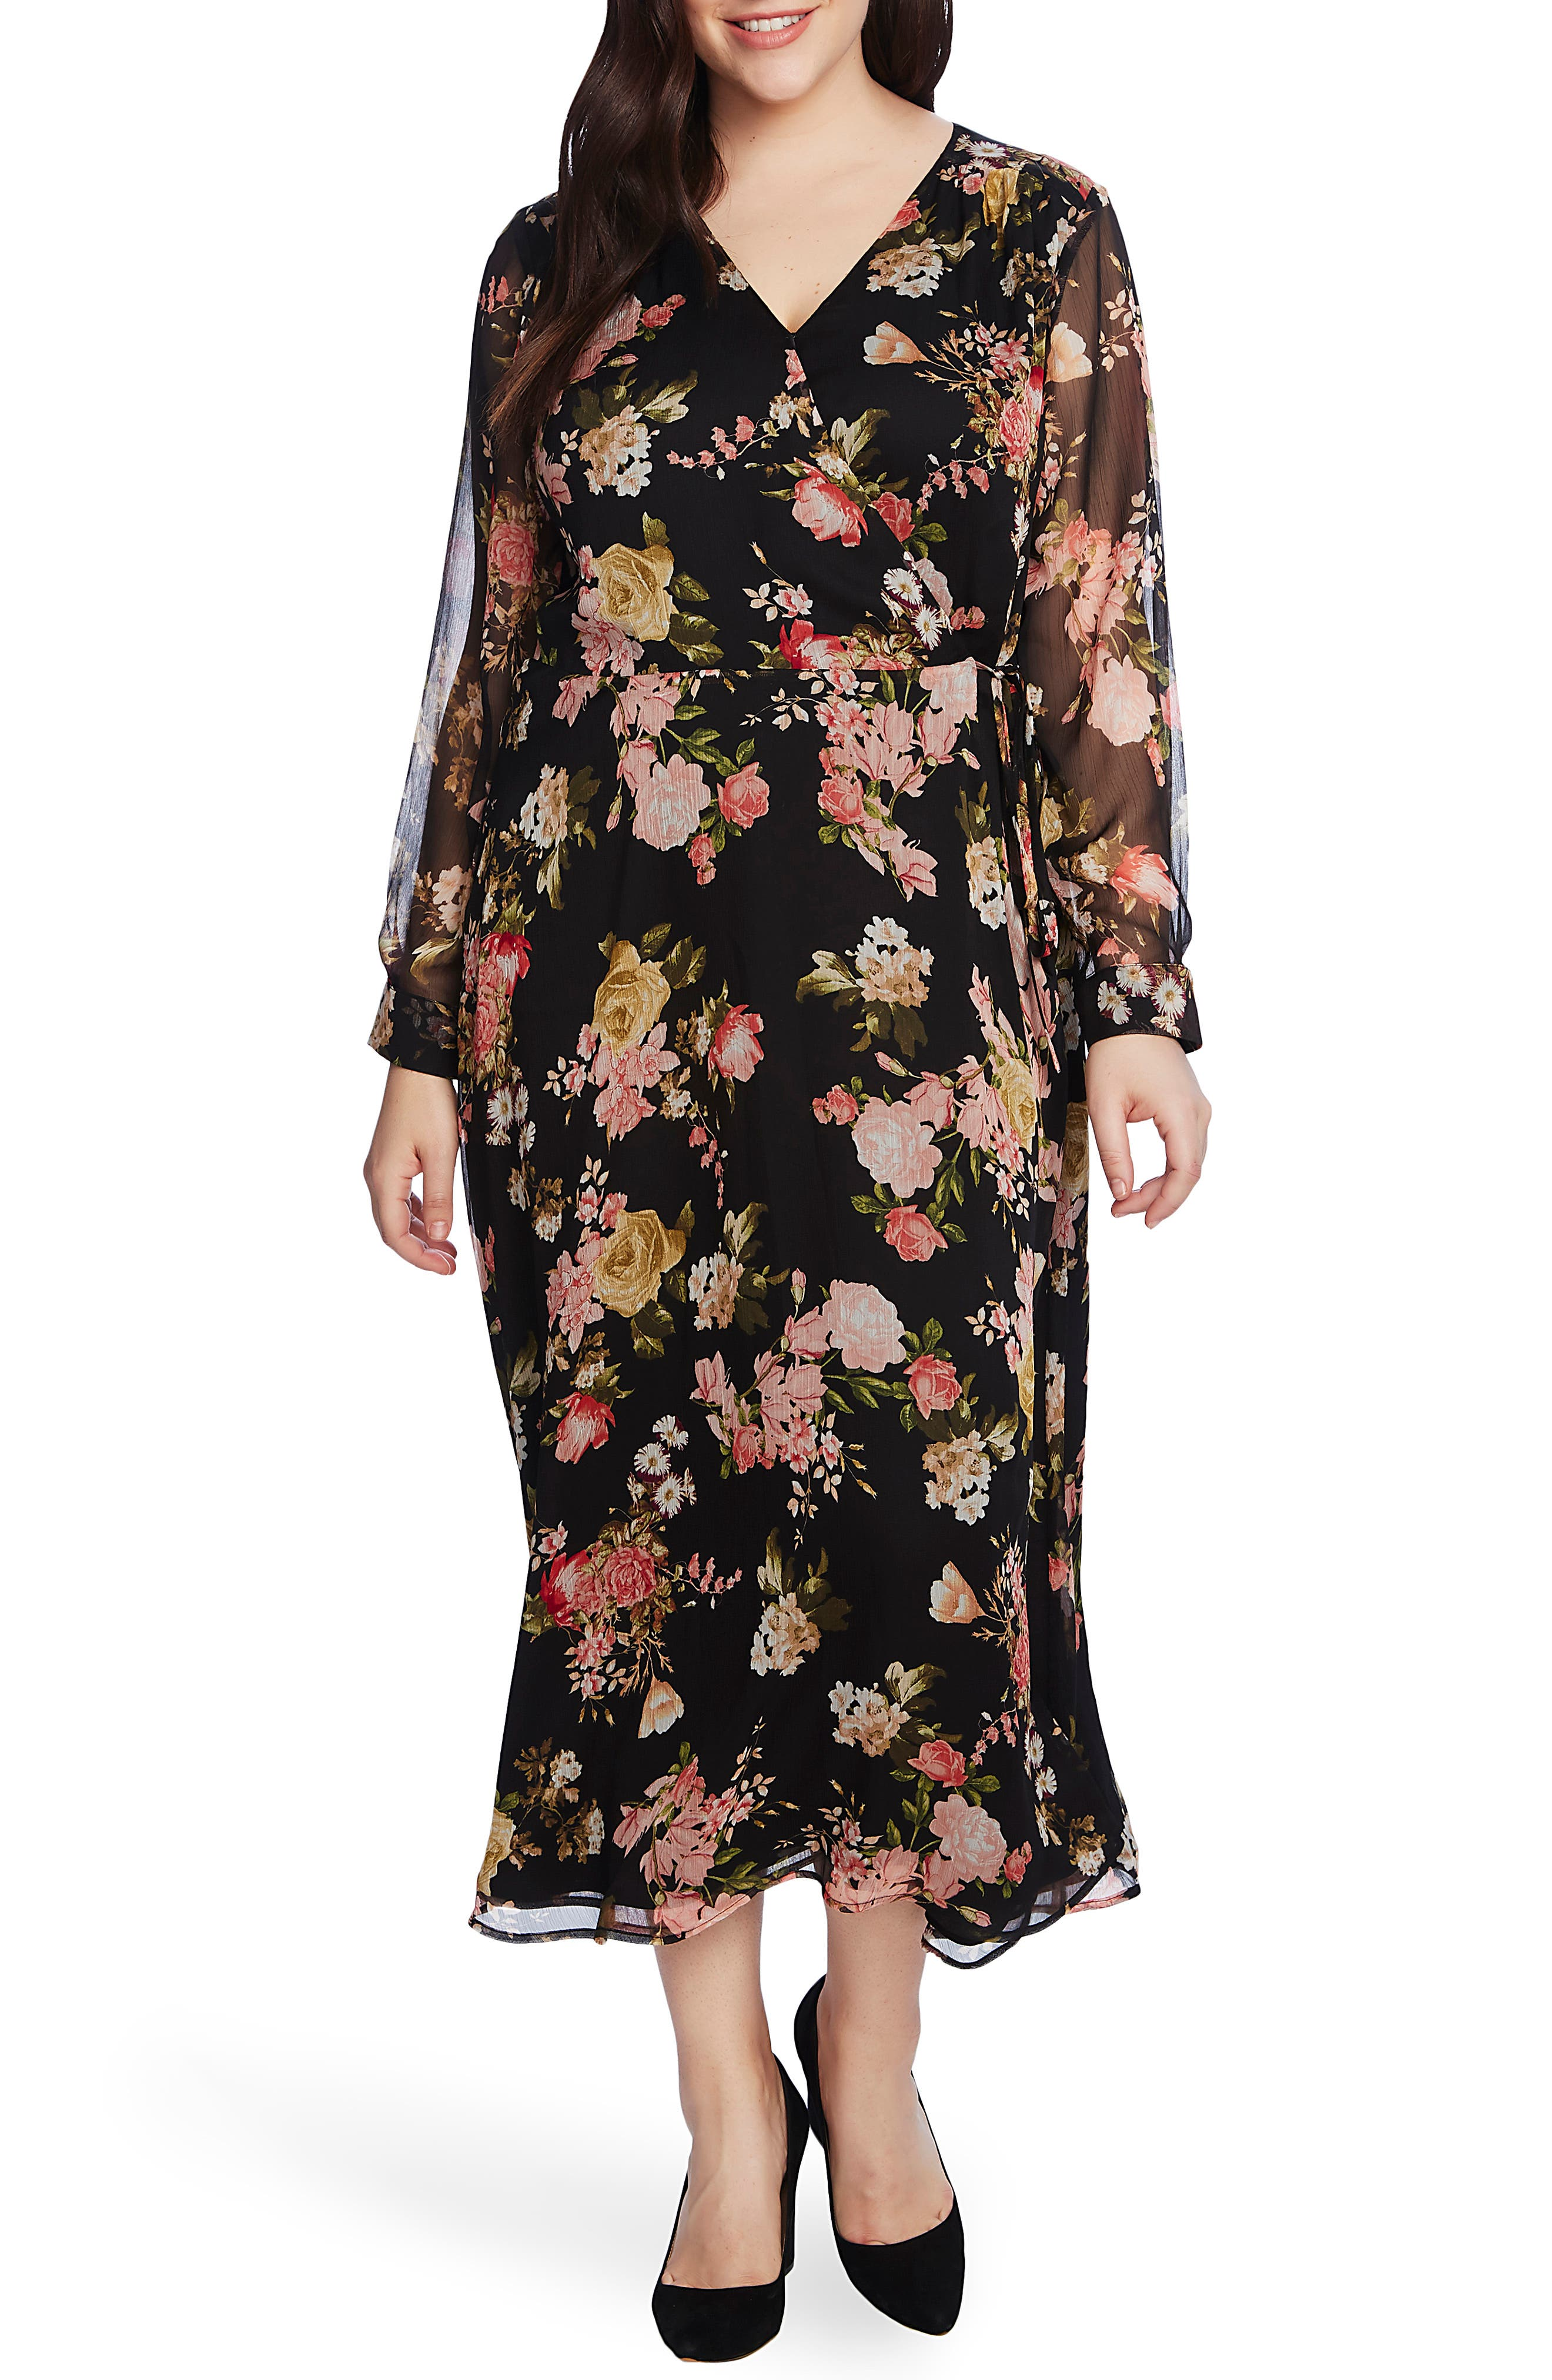 60s 70s Plus Size Dresses, Clothing, Costumes Plus Size Womens Vince Camuto Beautiful Blooms Long Sleeve Chiffon Dress $92.40 AT vintagedancer.com